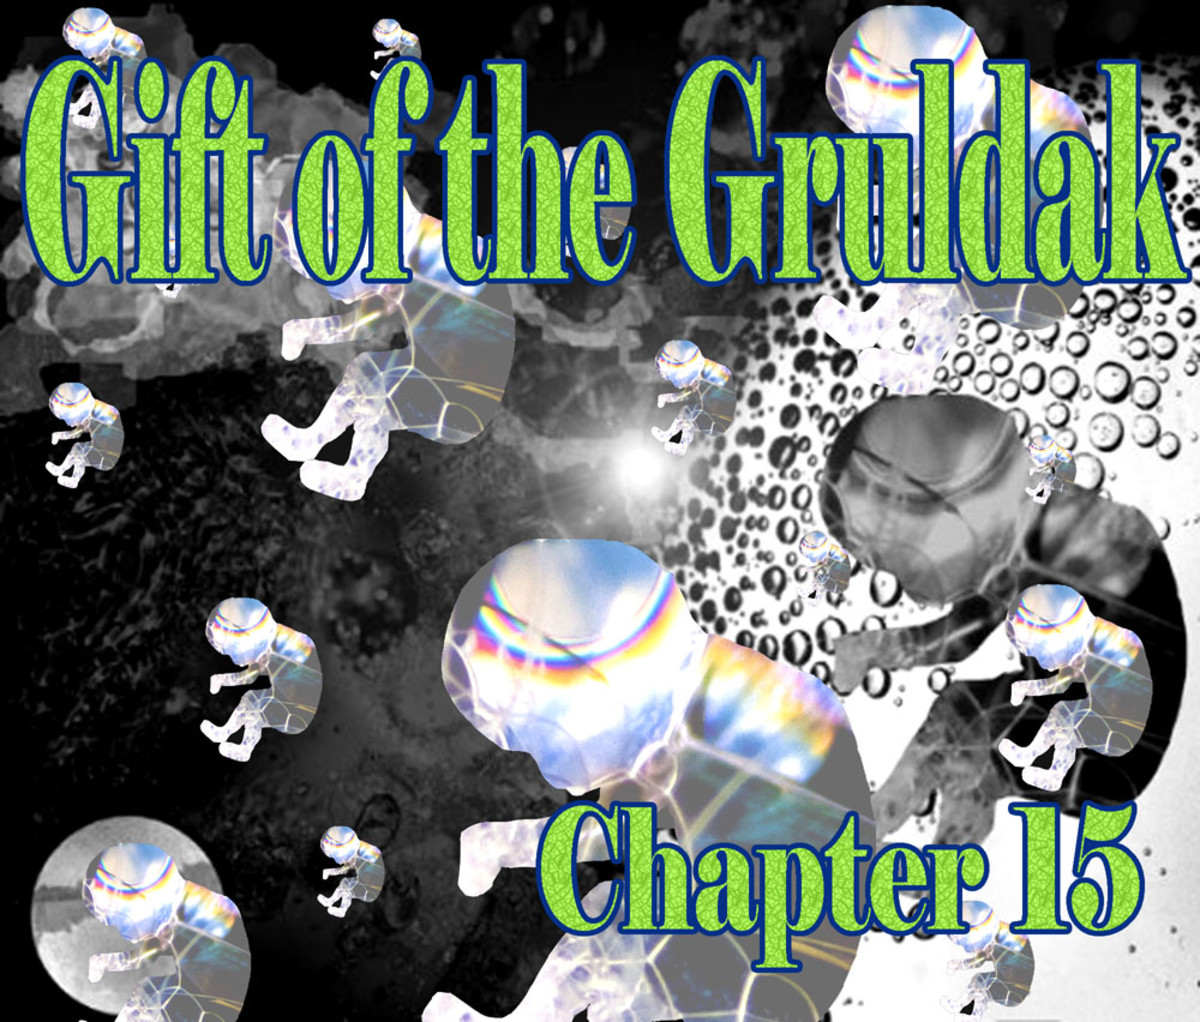 Gift of the Gruldak, Chapter 15: Fun with Interior Design for Compact Spaces